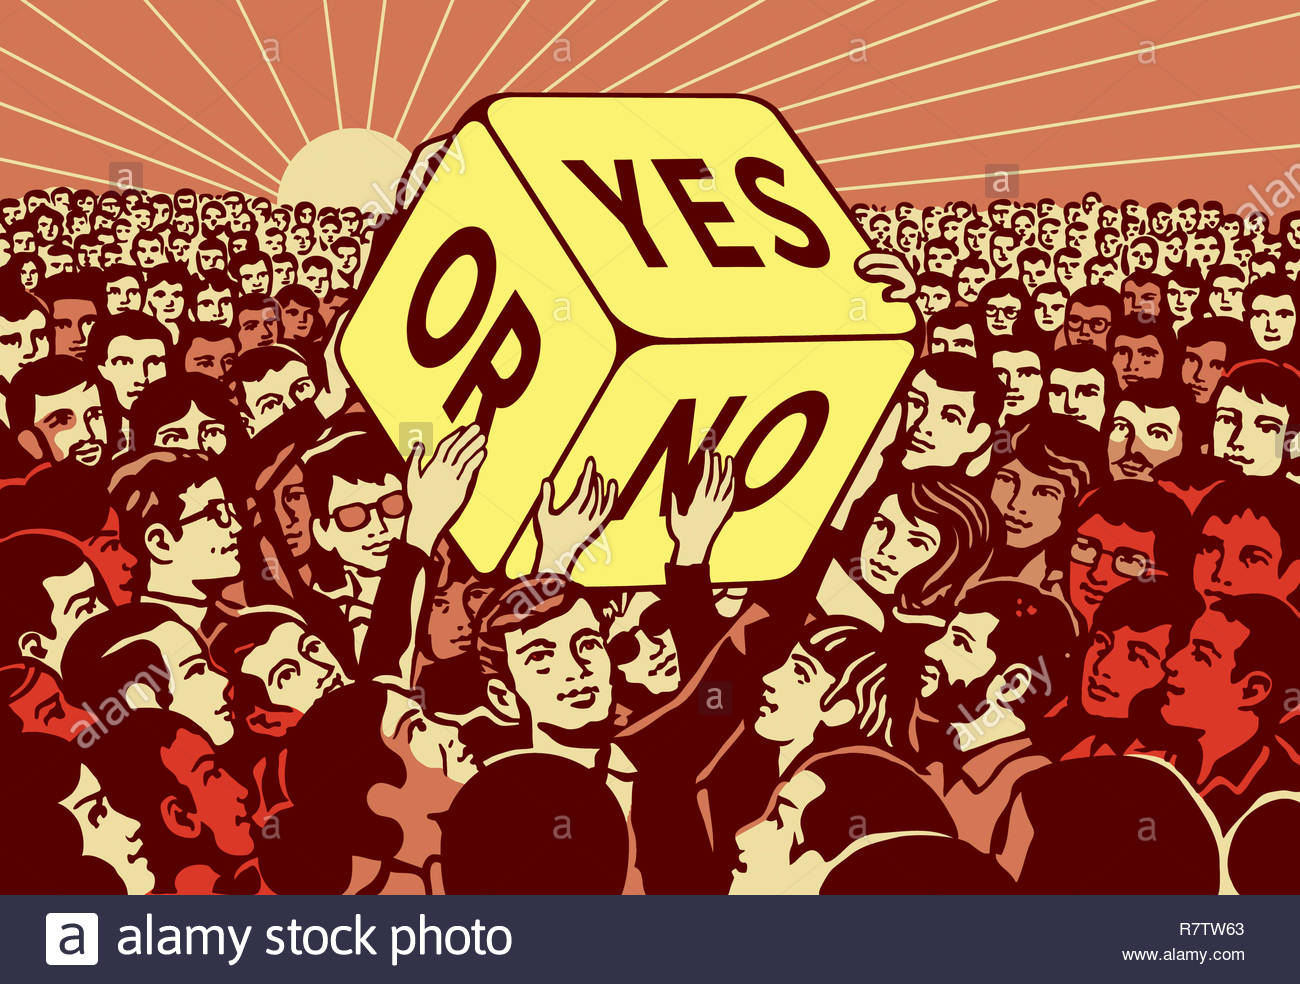 Crowd of people passing large dice with yes or no choice Stock Photo